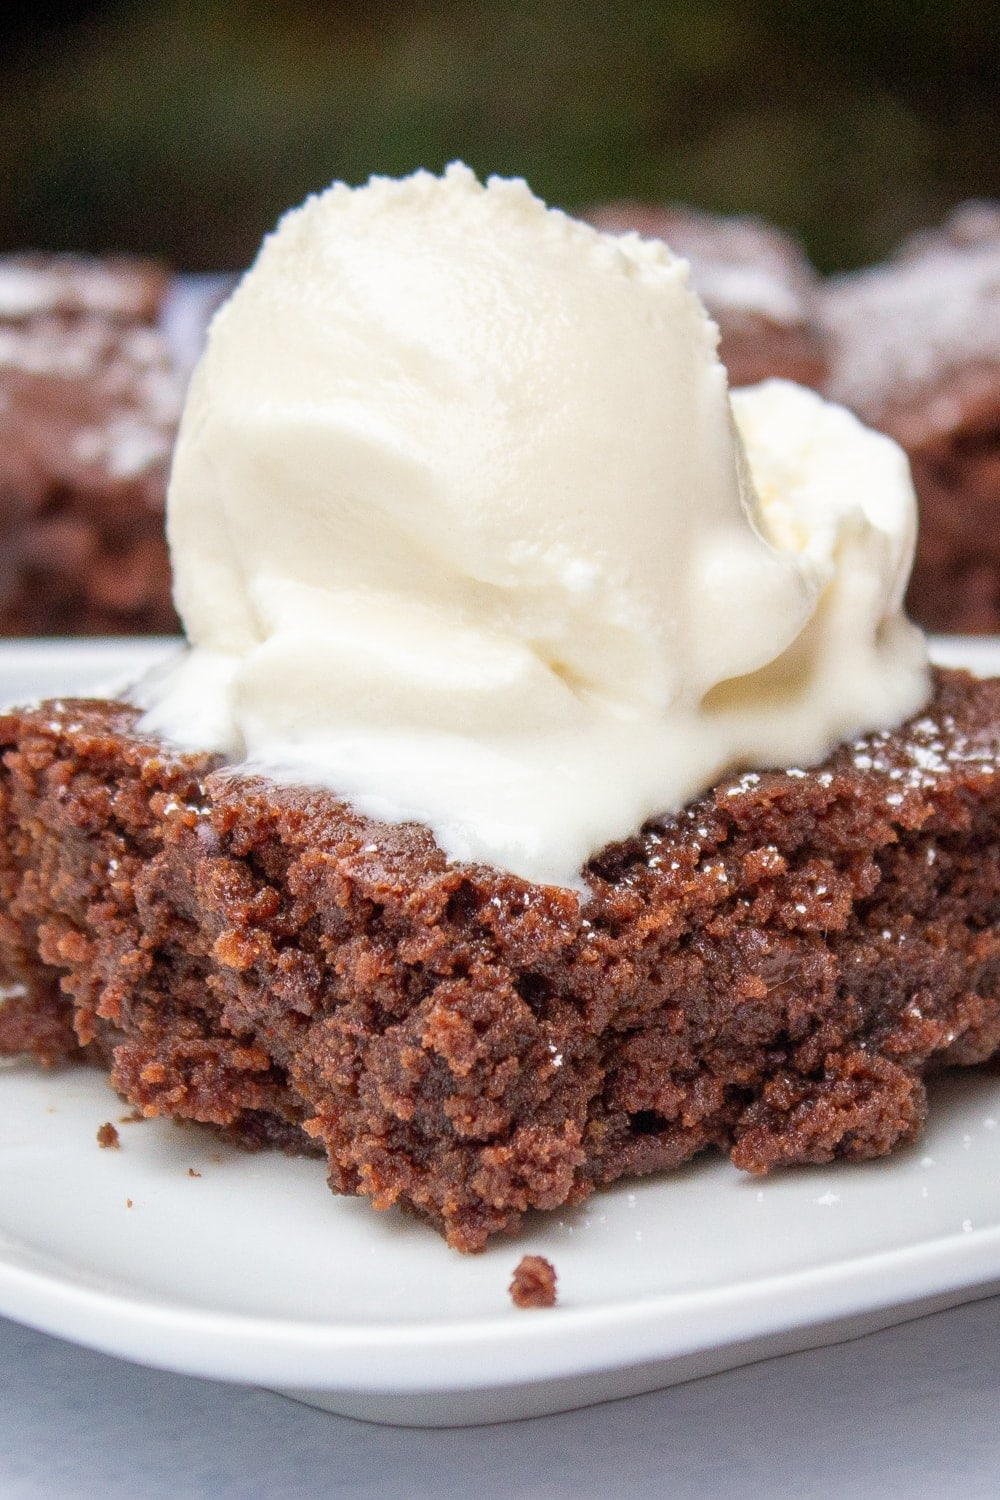 microwave brownie topped with ice cream p2